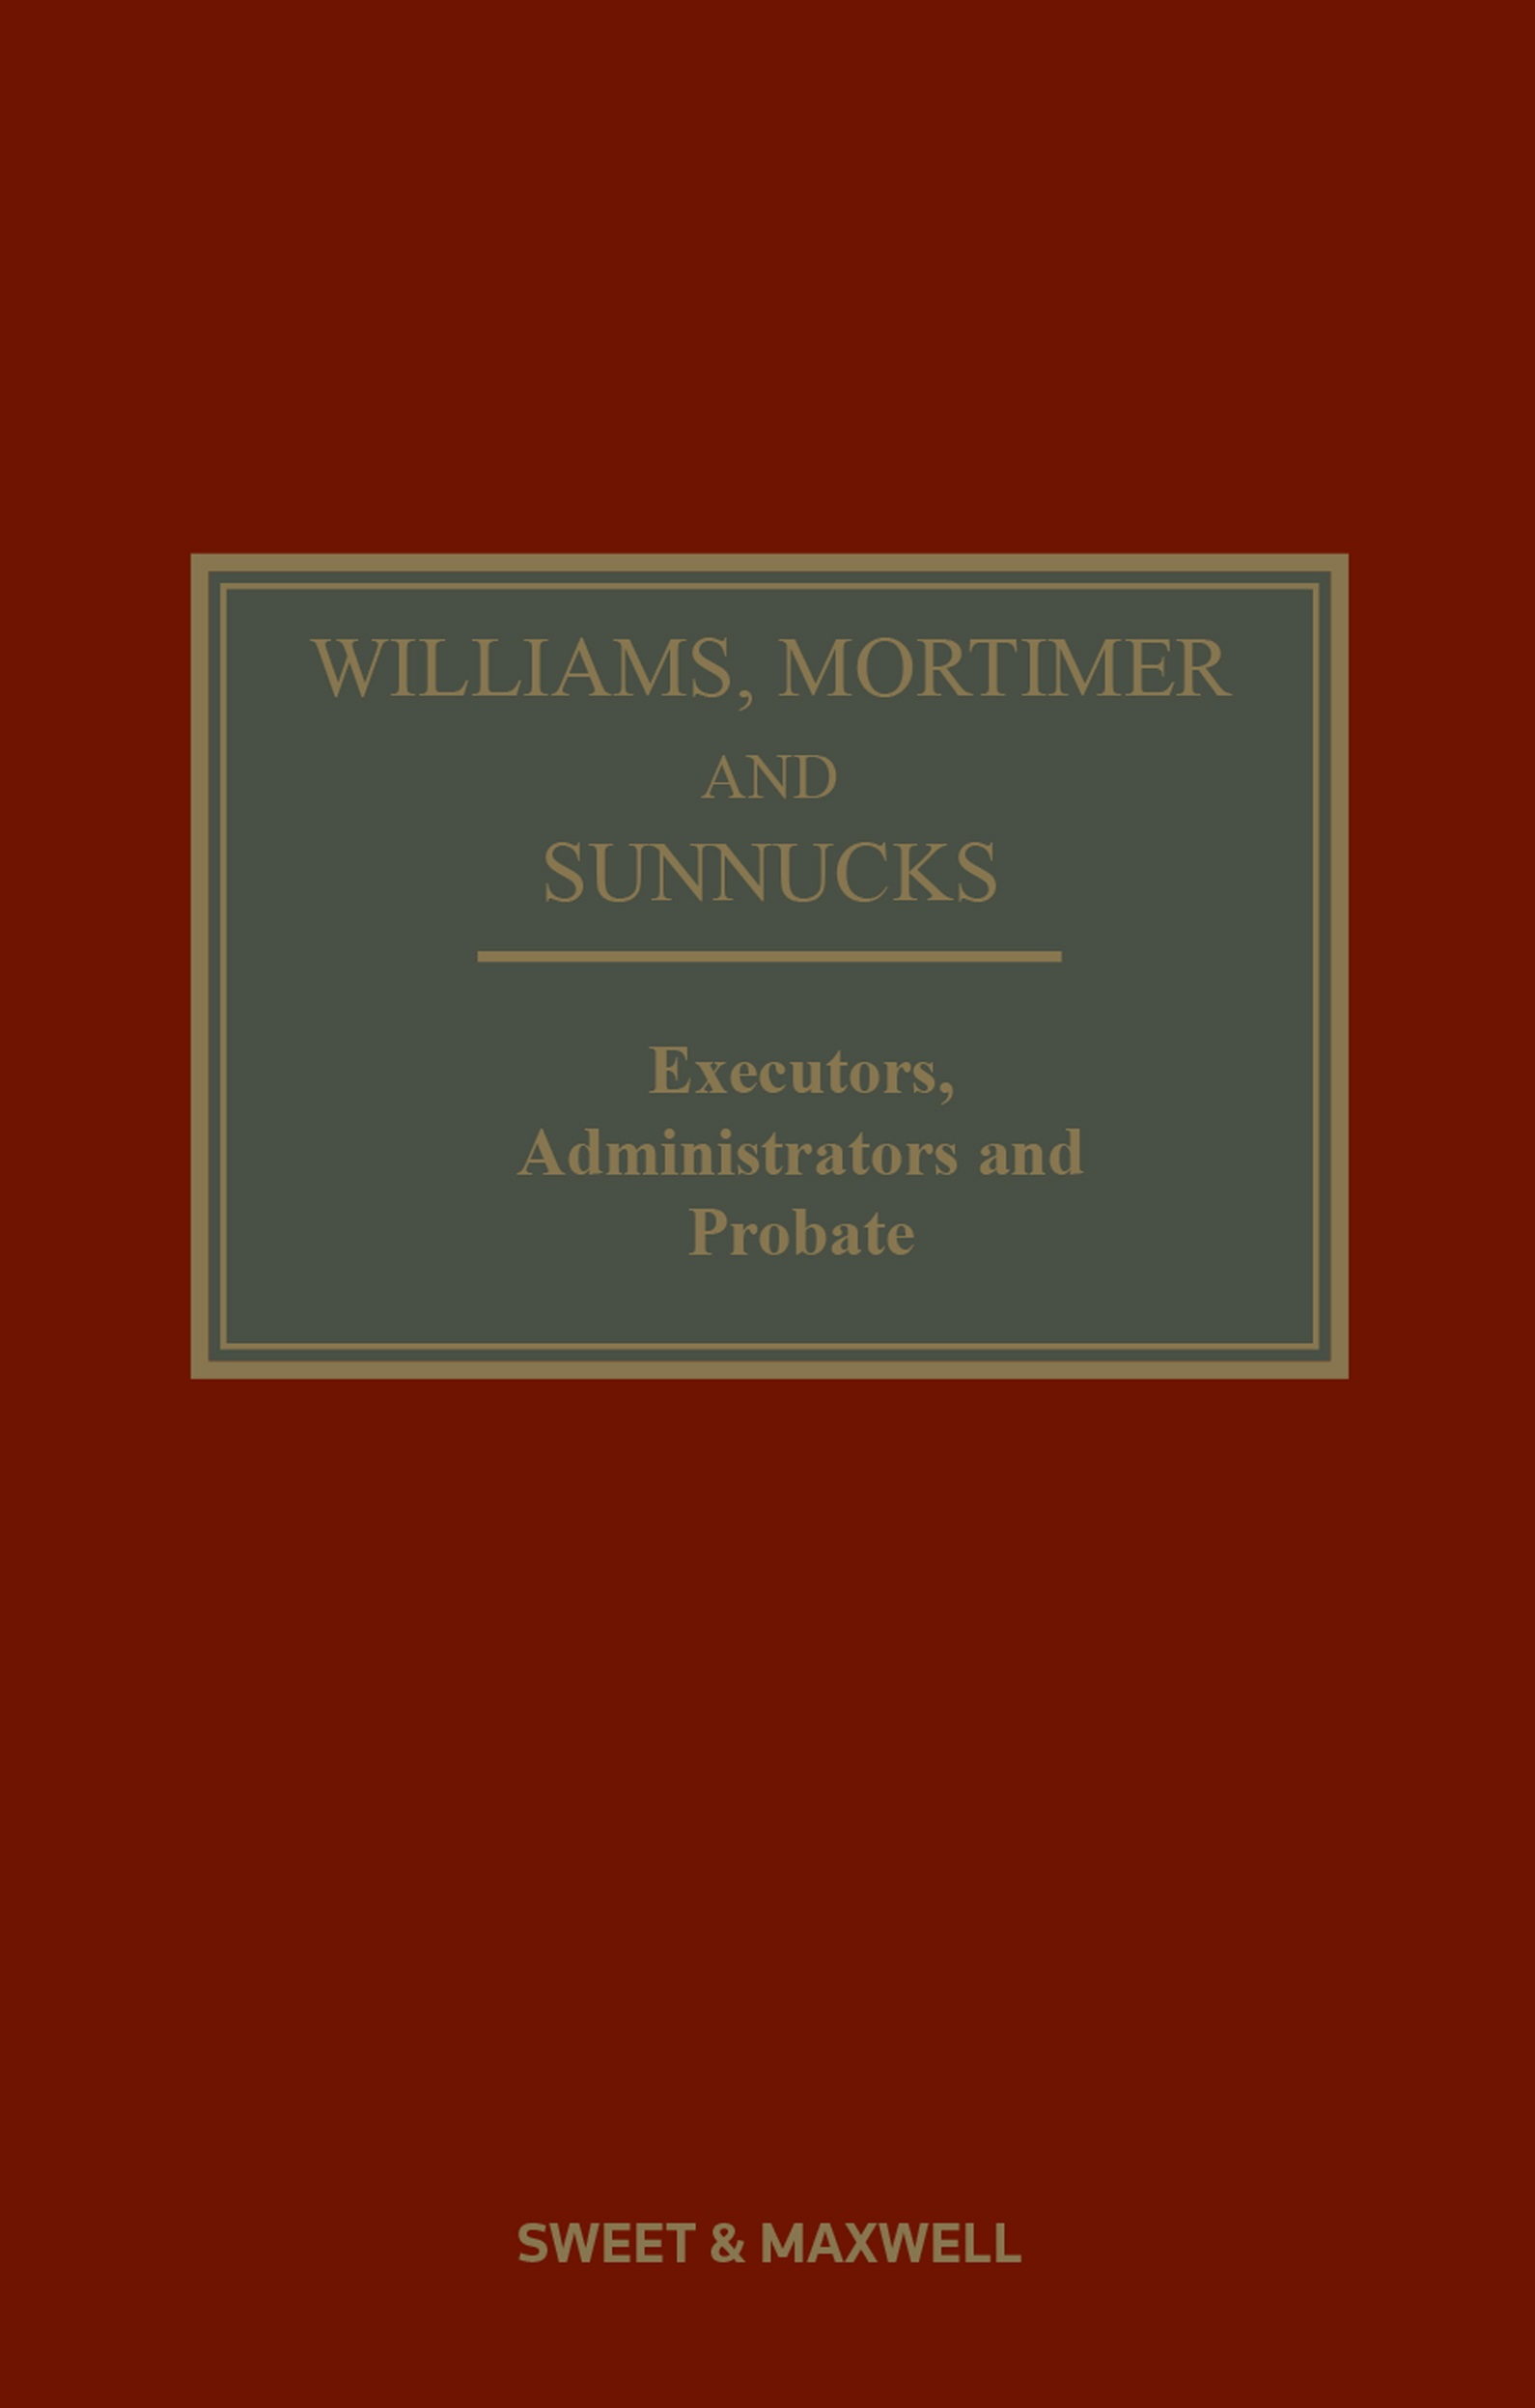 Williams, Mortimer & Sunnucks - Executors, Administrators and Probate 21st edition